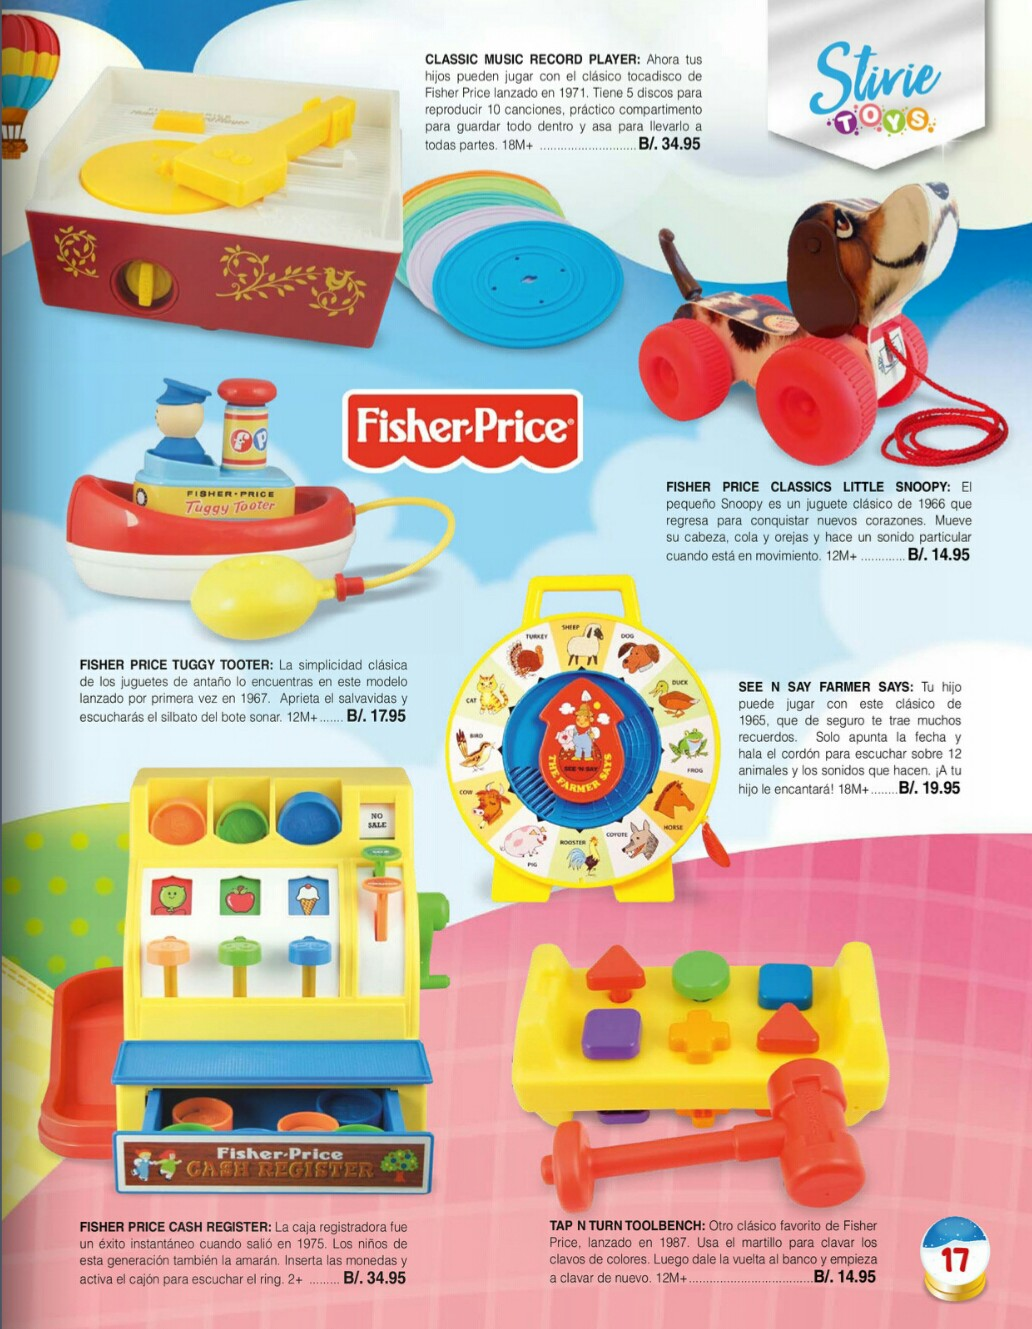 Catalogo juguetes Stivie toys 2018 p17